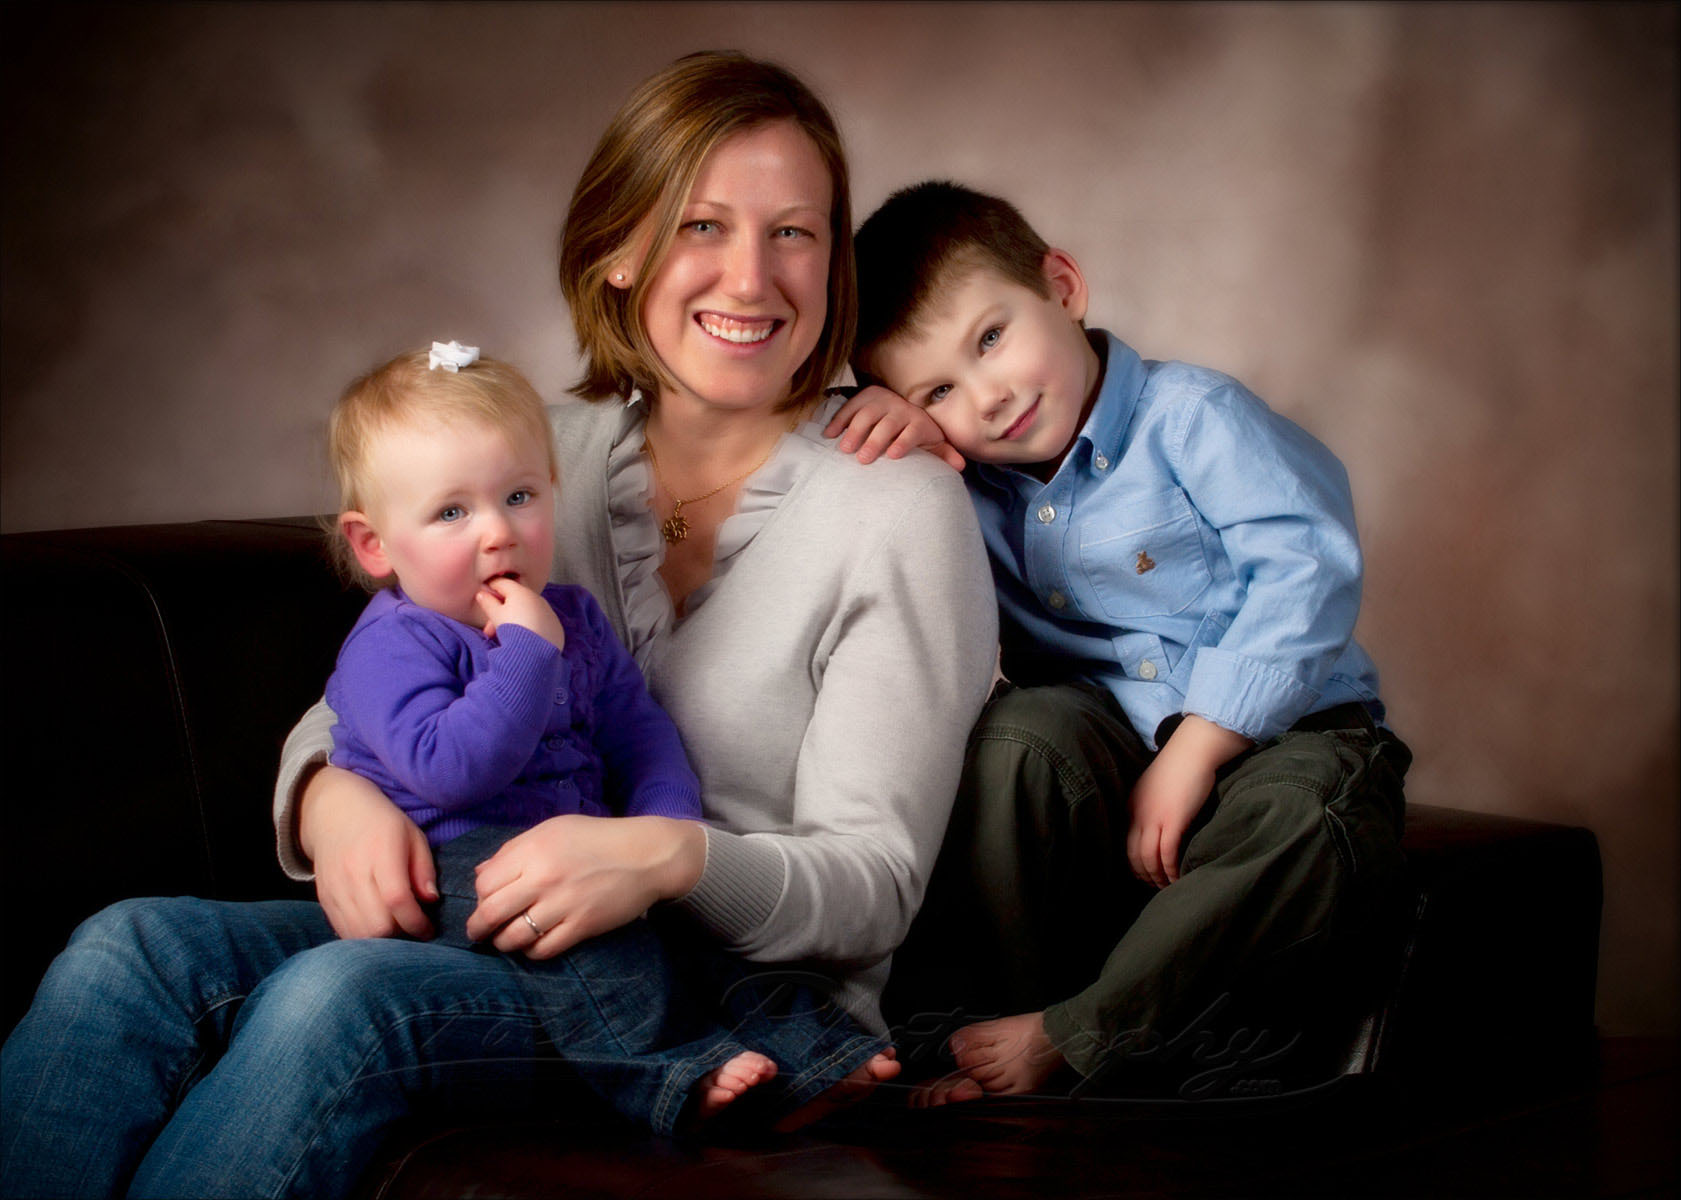 mom and her young boy seated with new baby sister for portrait